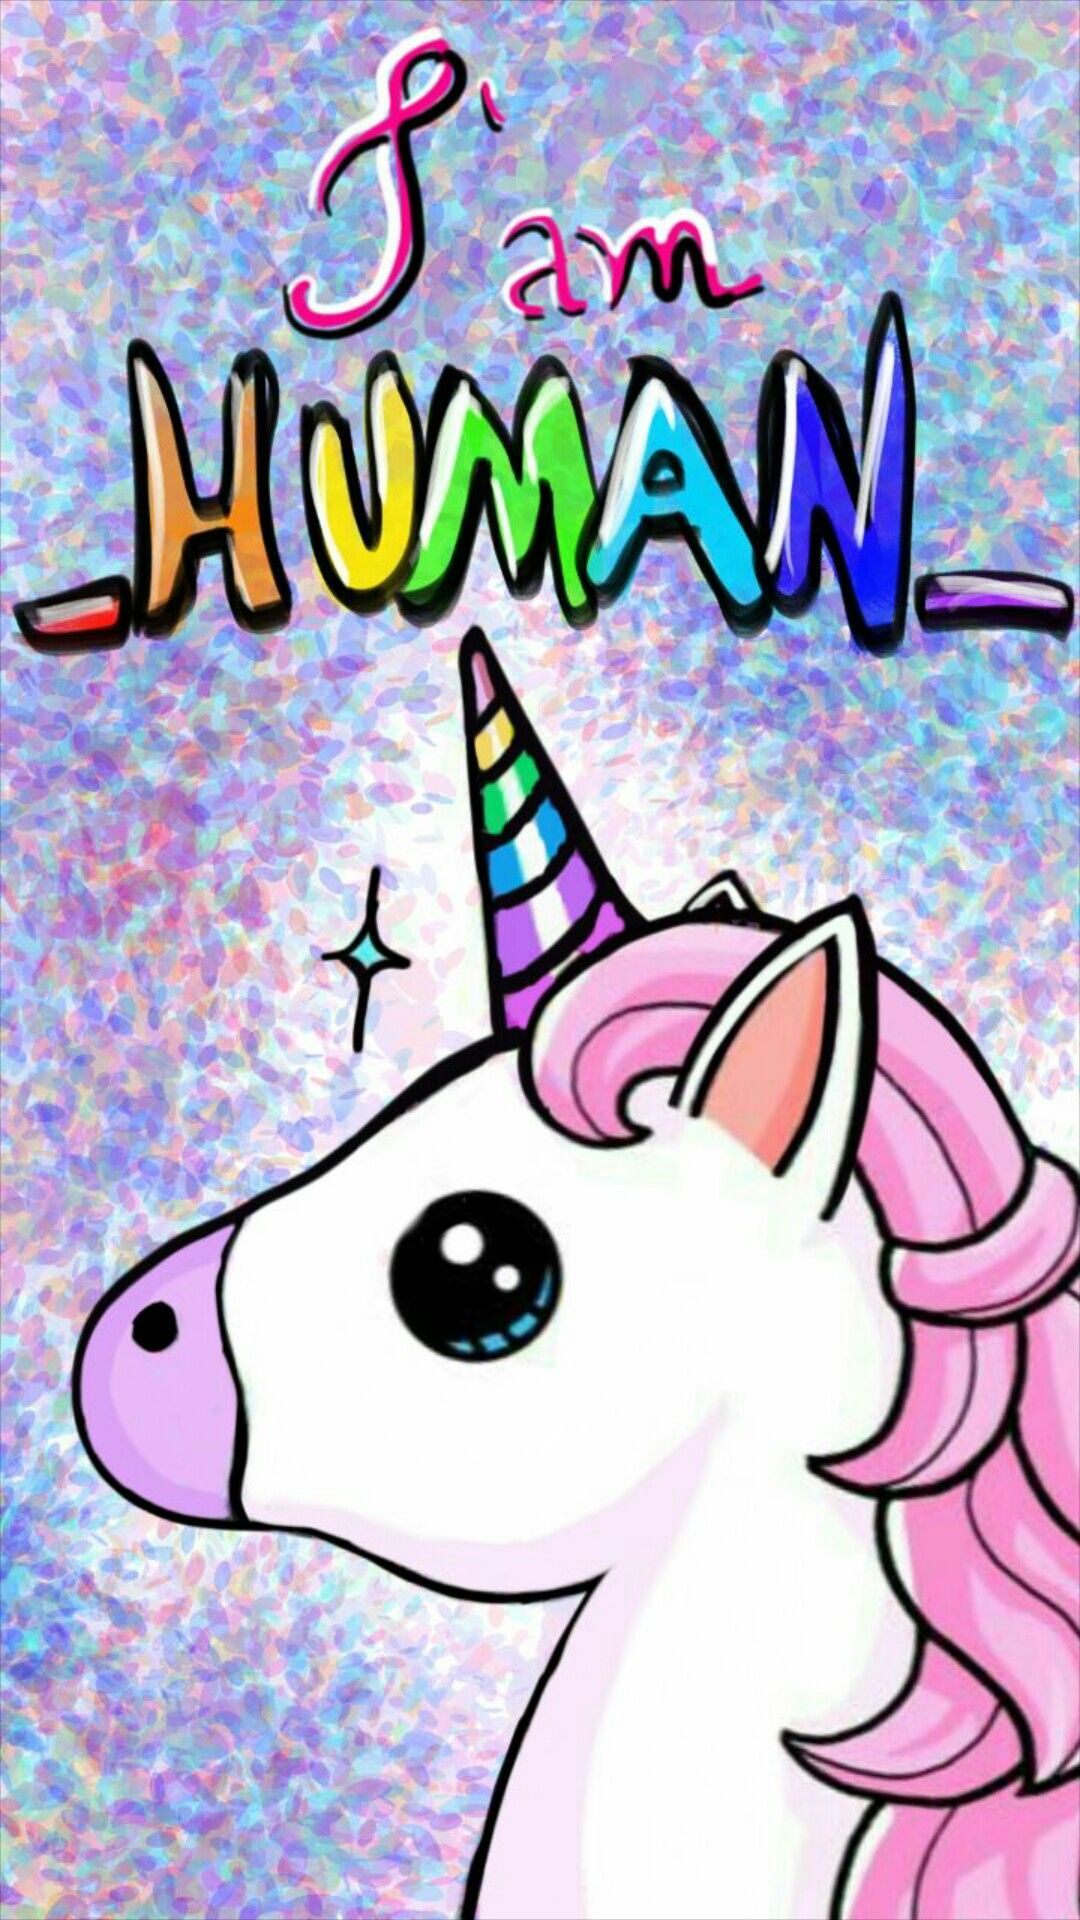 Cute Unicorn Wallpaper By Alex Heda On Twitter Unicorn Wallpaper Cute Images For Wallpaper Unicorn Pictures